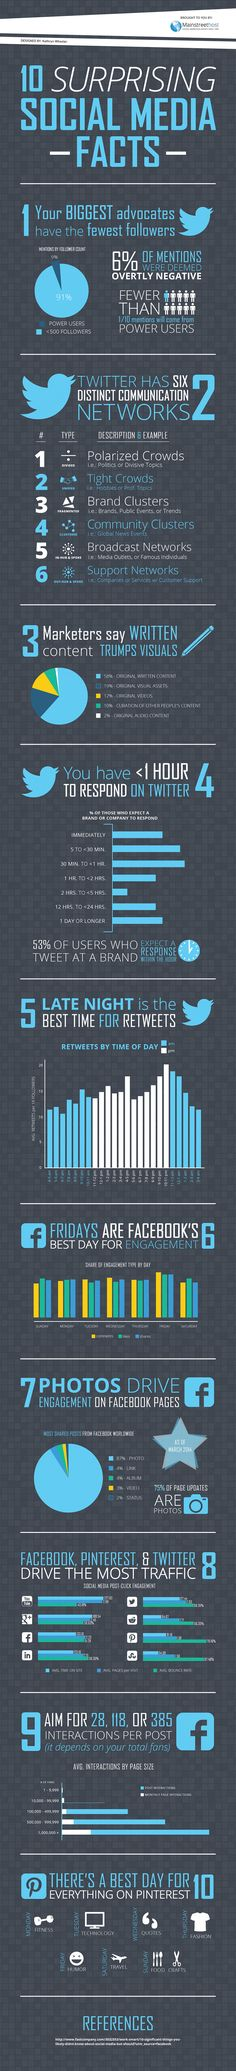 Fewer Than 1/10 Mentions Are From Power Users (And Other #SocialMedia Facts) #INFOGRAPHIC